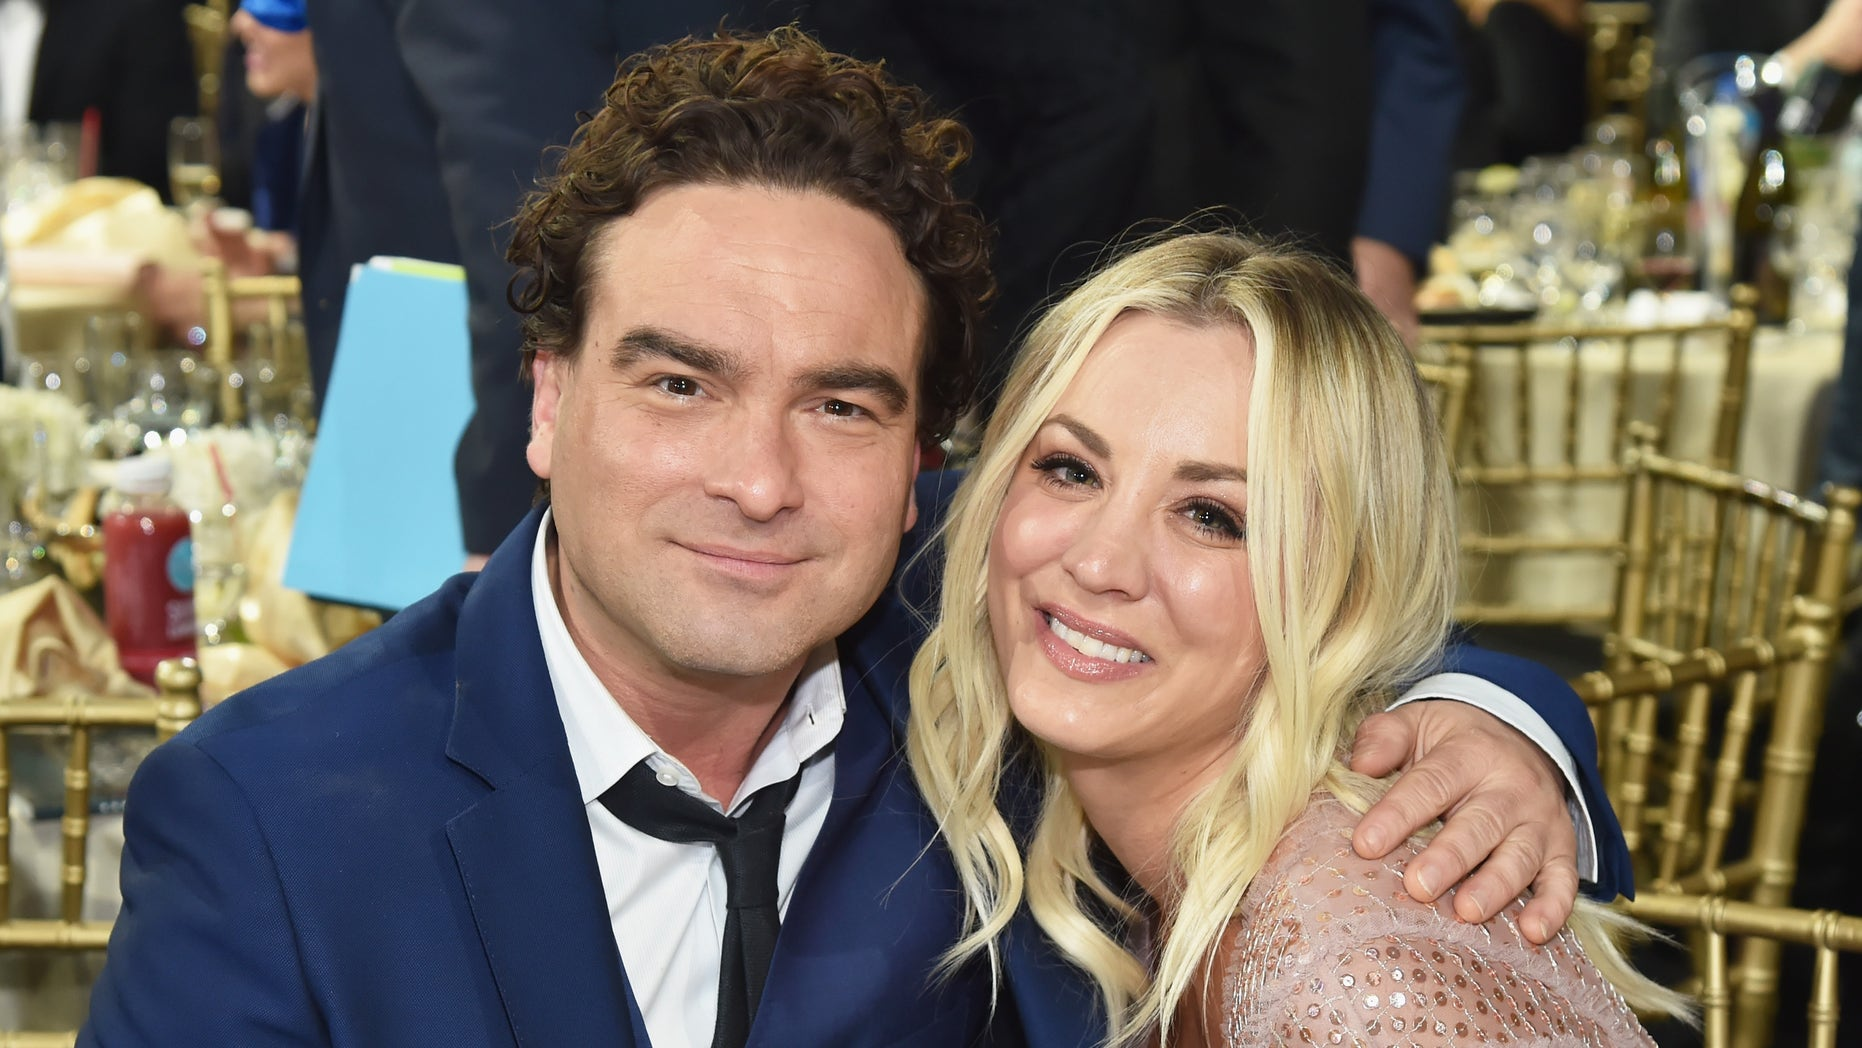 'Big Bang Theory' stars Johnny Galecki and Kaley Cuoco shared their thoughts on the finale of the show.